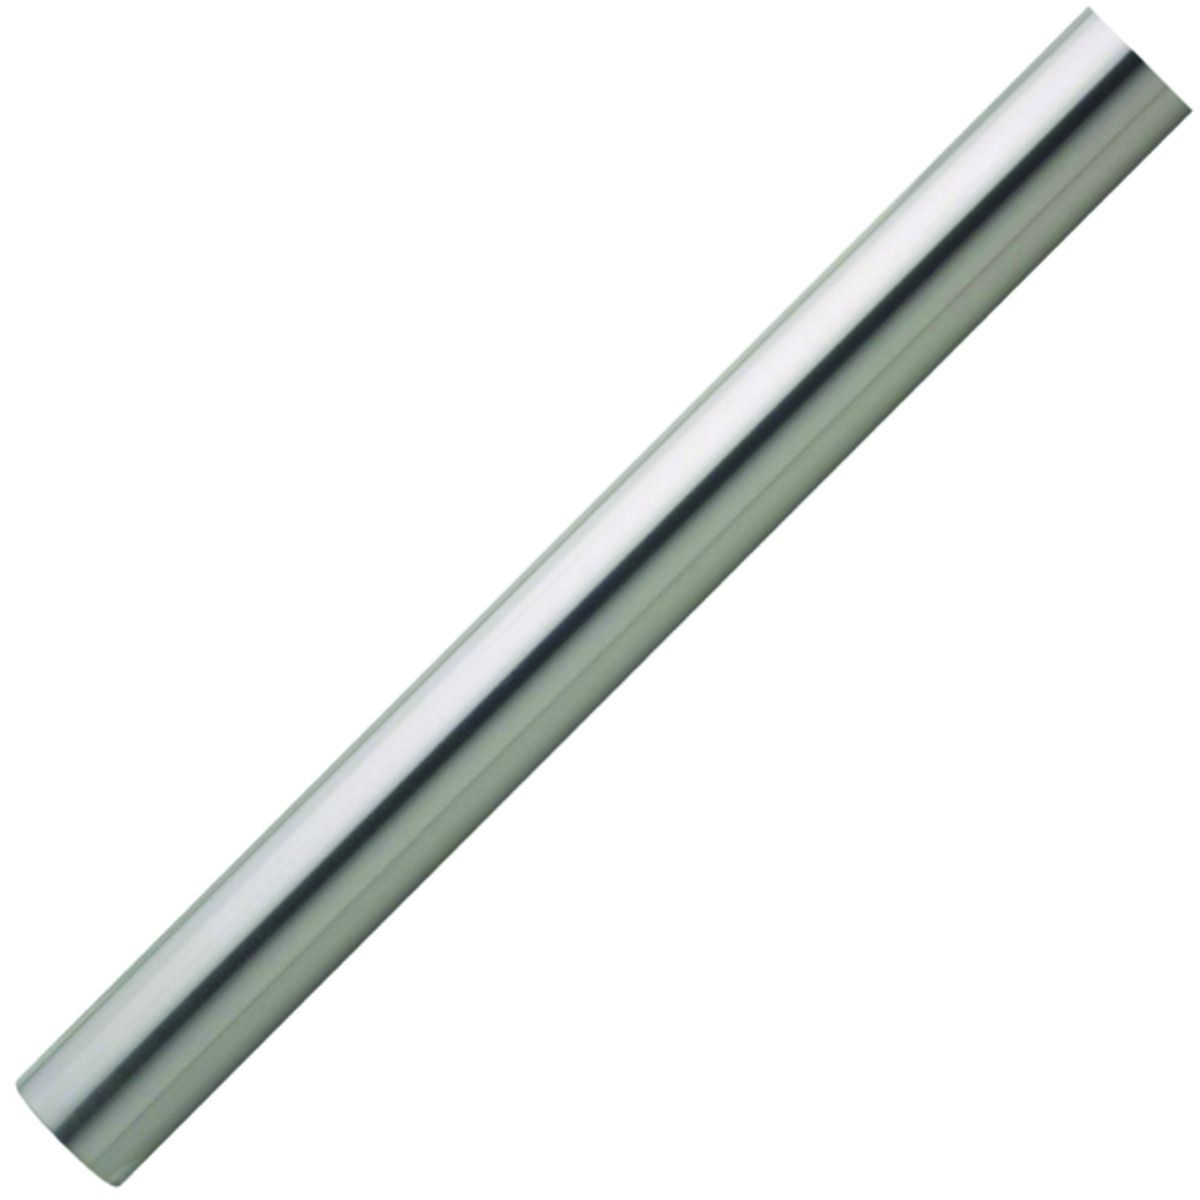 Compare prices for Brushed Finish Handrail 40 x 2400mm Interior